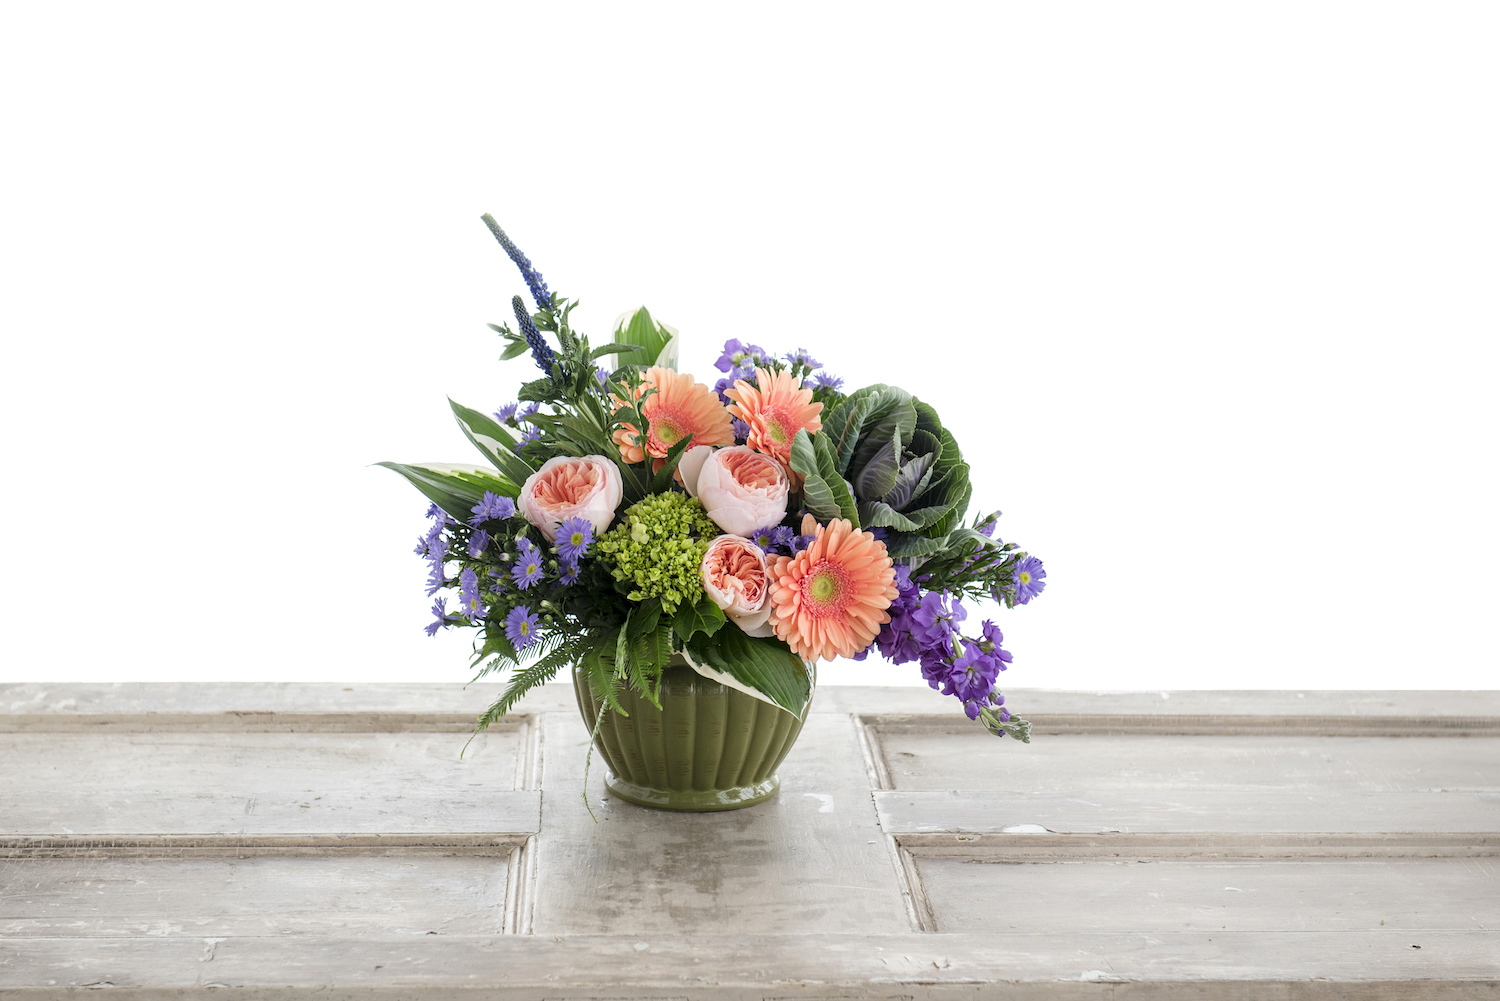 Purple and peach combine in the sage green pot with a lovely design. This is part of the Artisan Collection at J. Morris Flowers.